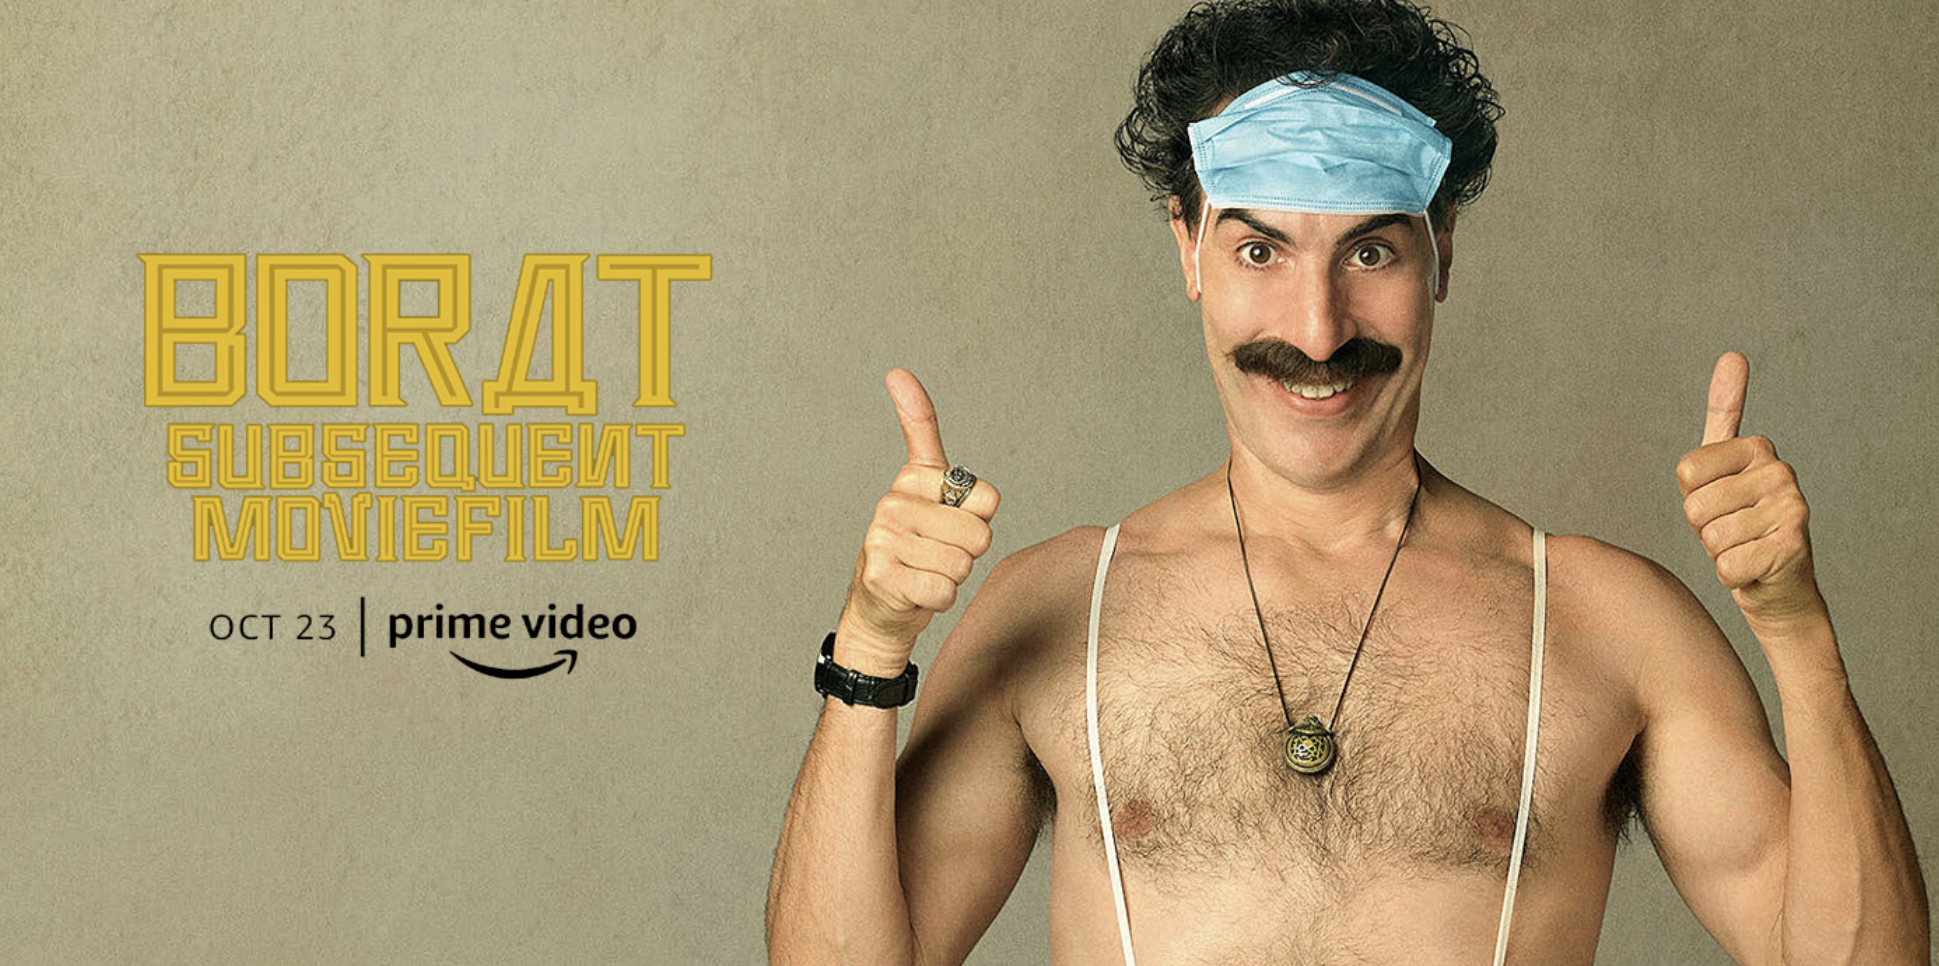 Reseña: BORAT SUBSEQUENT MOVIEFILM